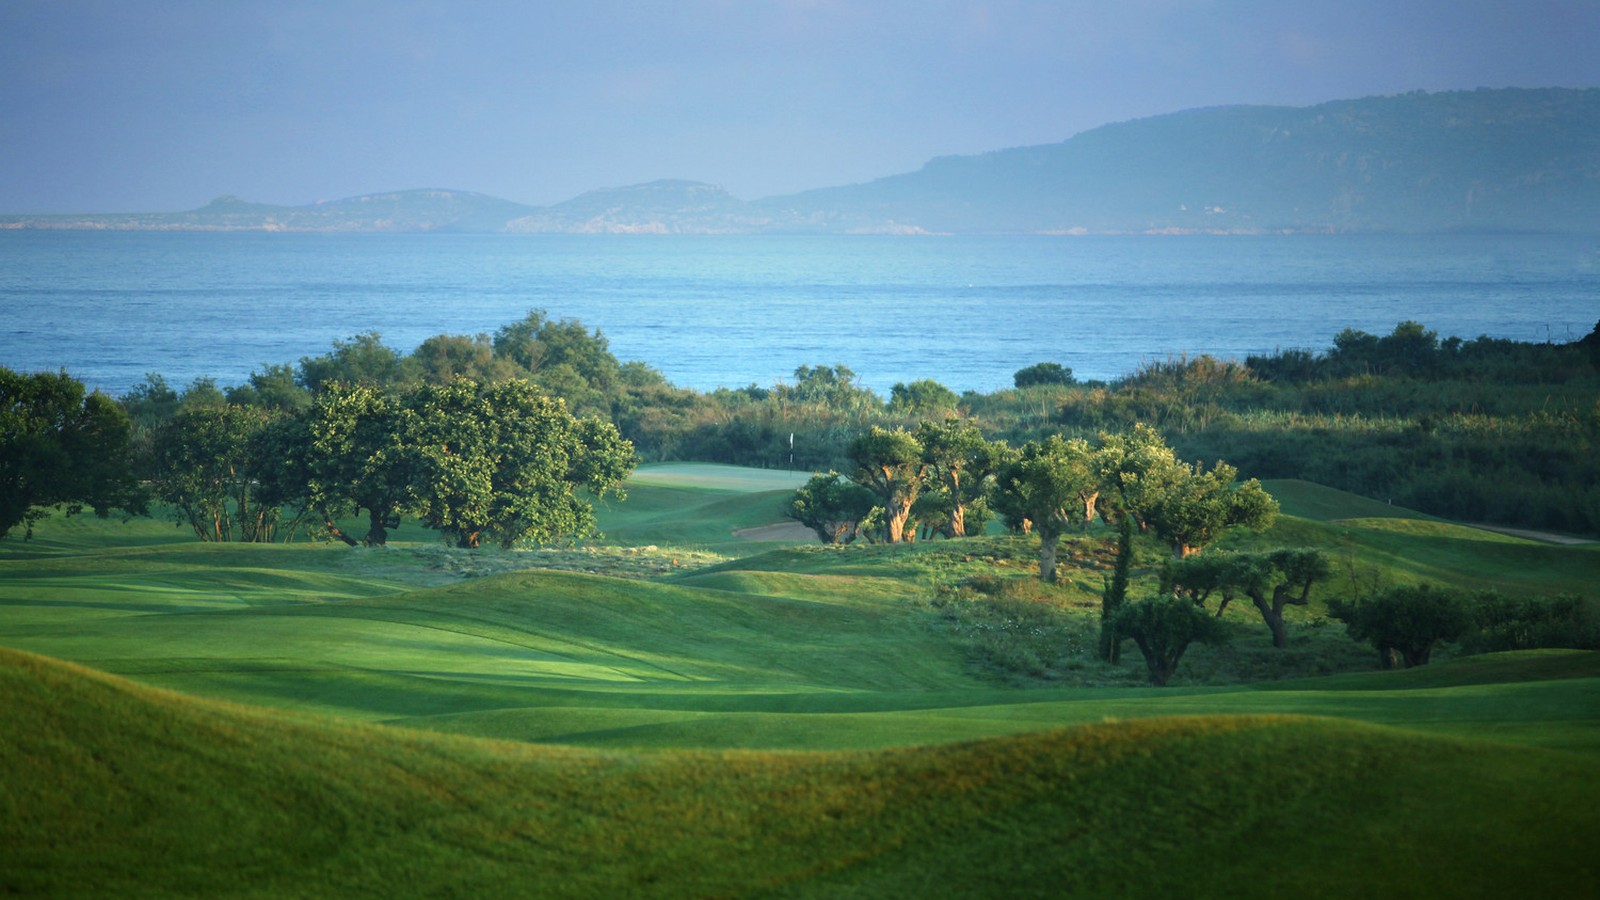 The Westin Resort Costa Navarino Messinia Greece Activities Golf The Dunes Course Sea View